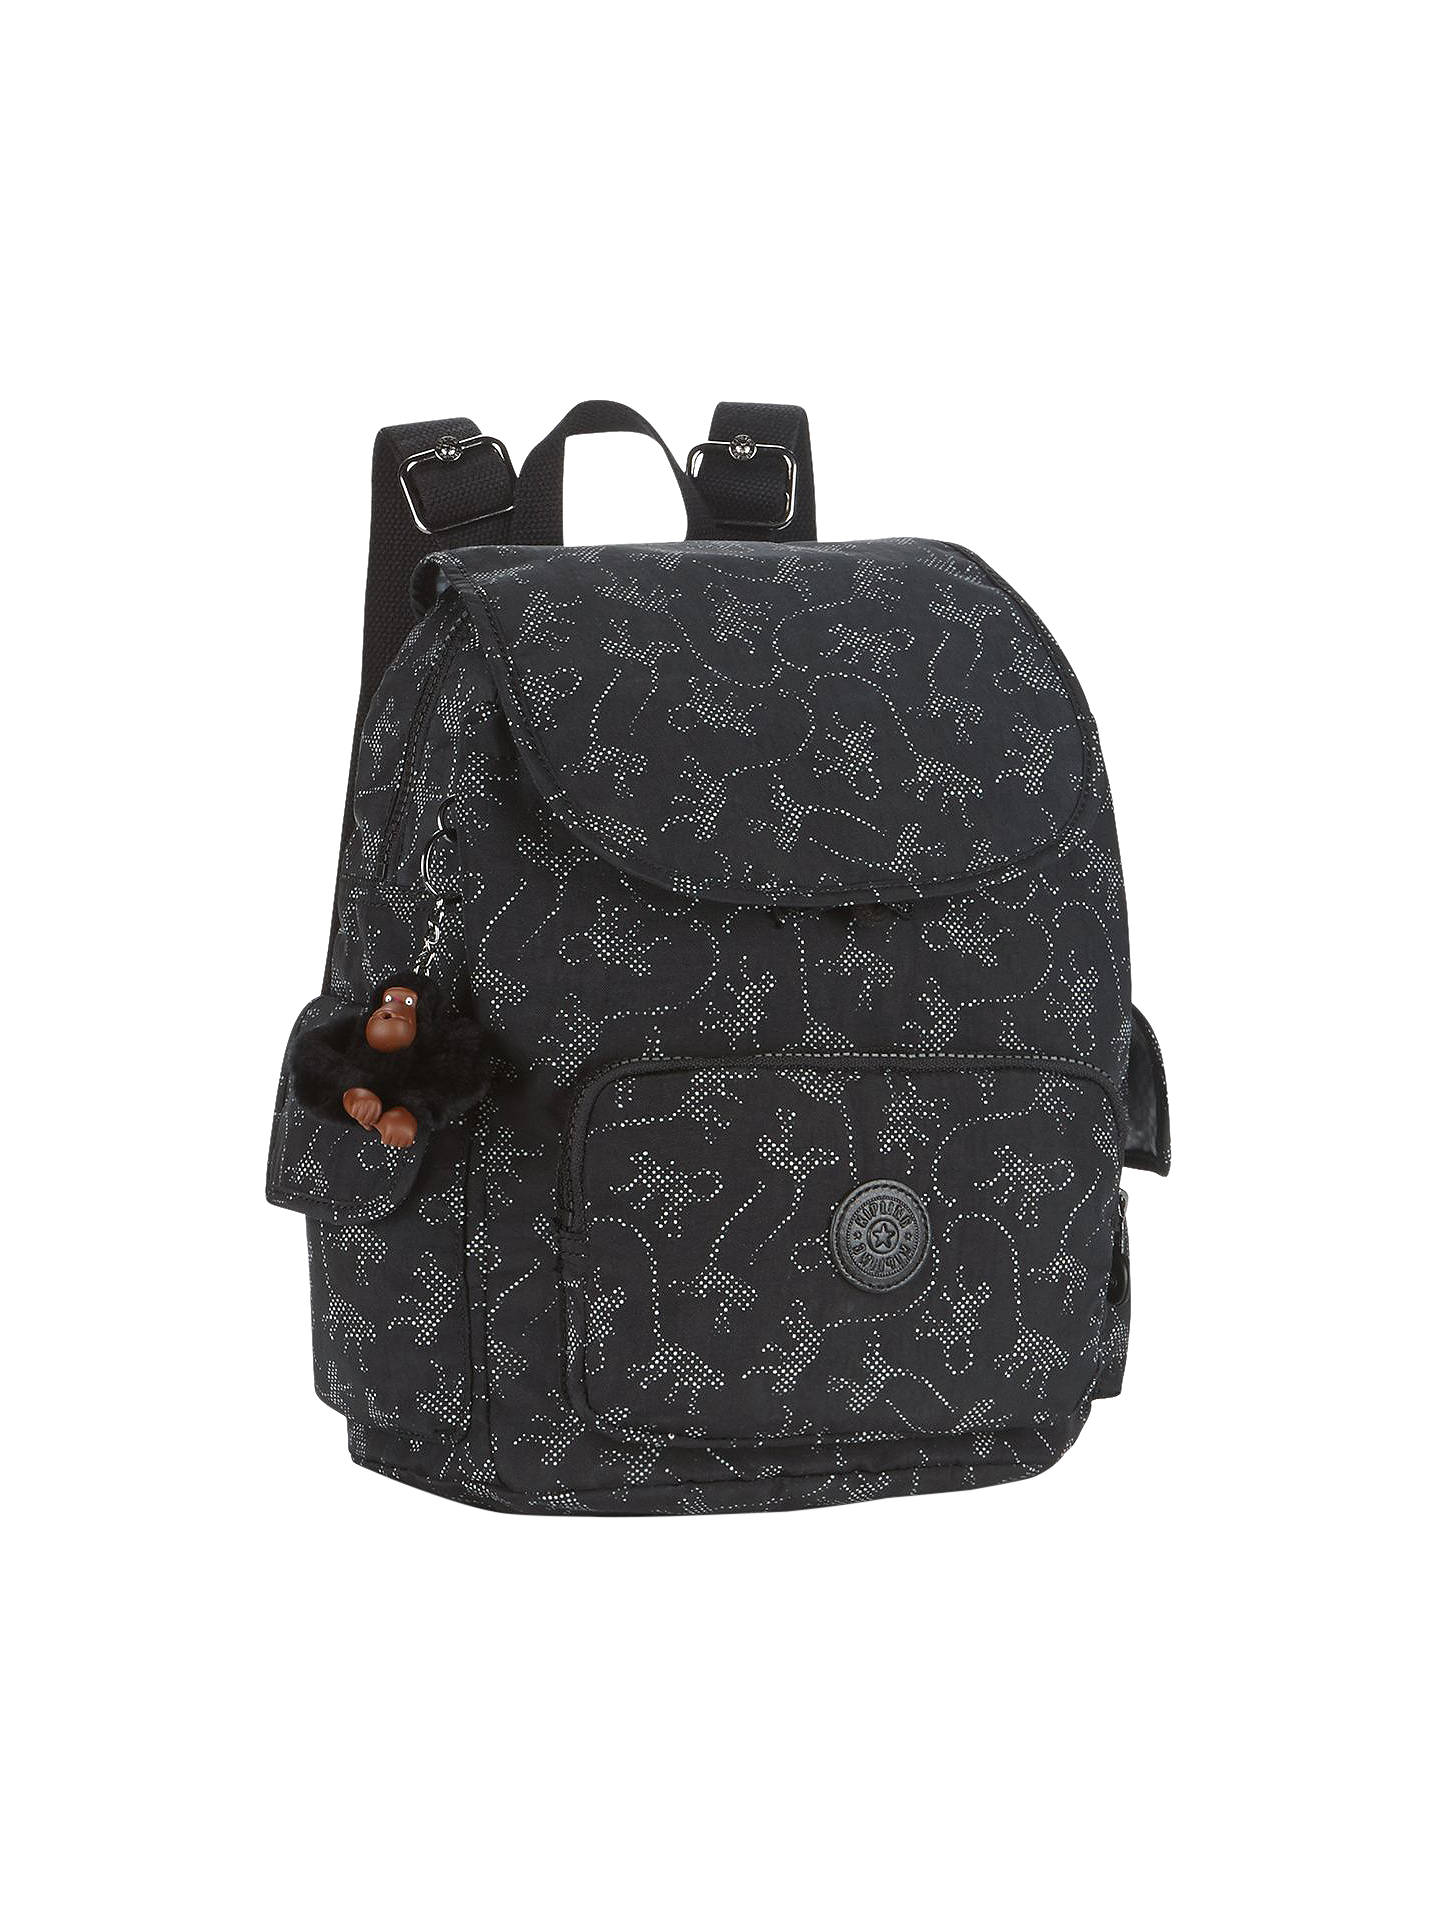 Kipling City Pack S Small Backpack at John Lewis   Partners 9368ed5a743be